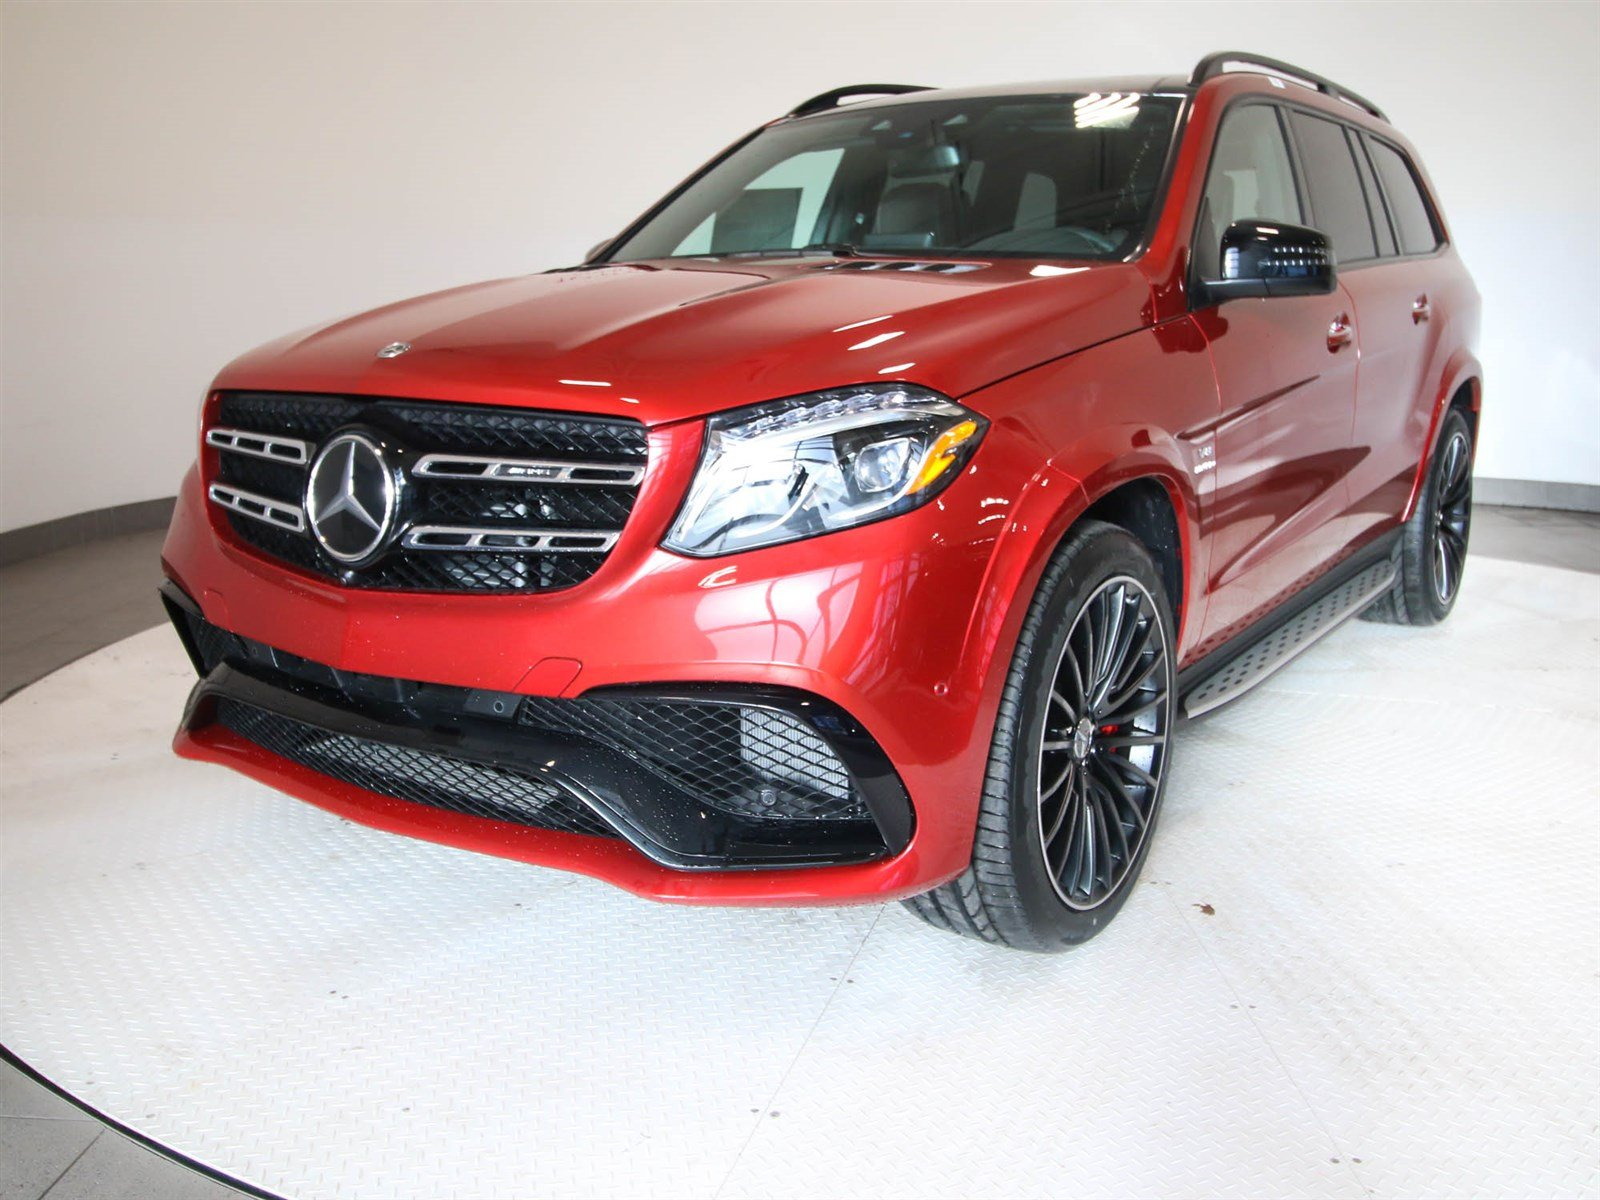 New 2018 mercedes benz gls amg gls 63 suv suv in fort for Mercedes benz amg suv 2018